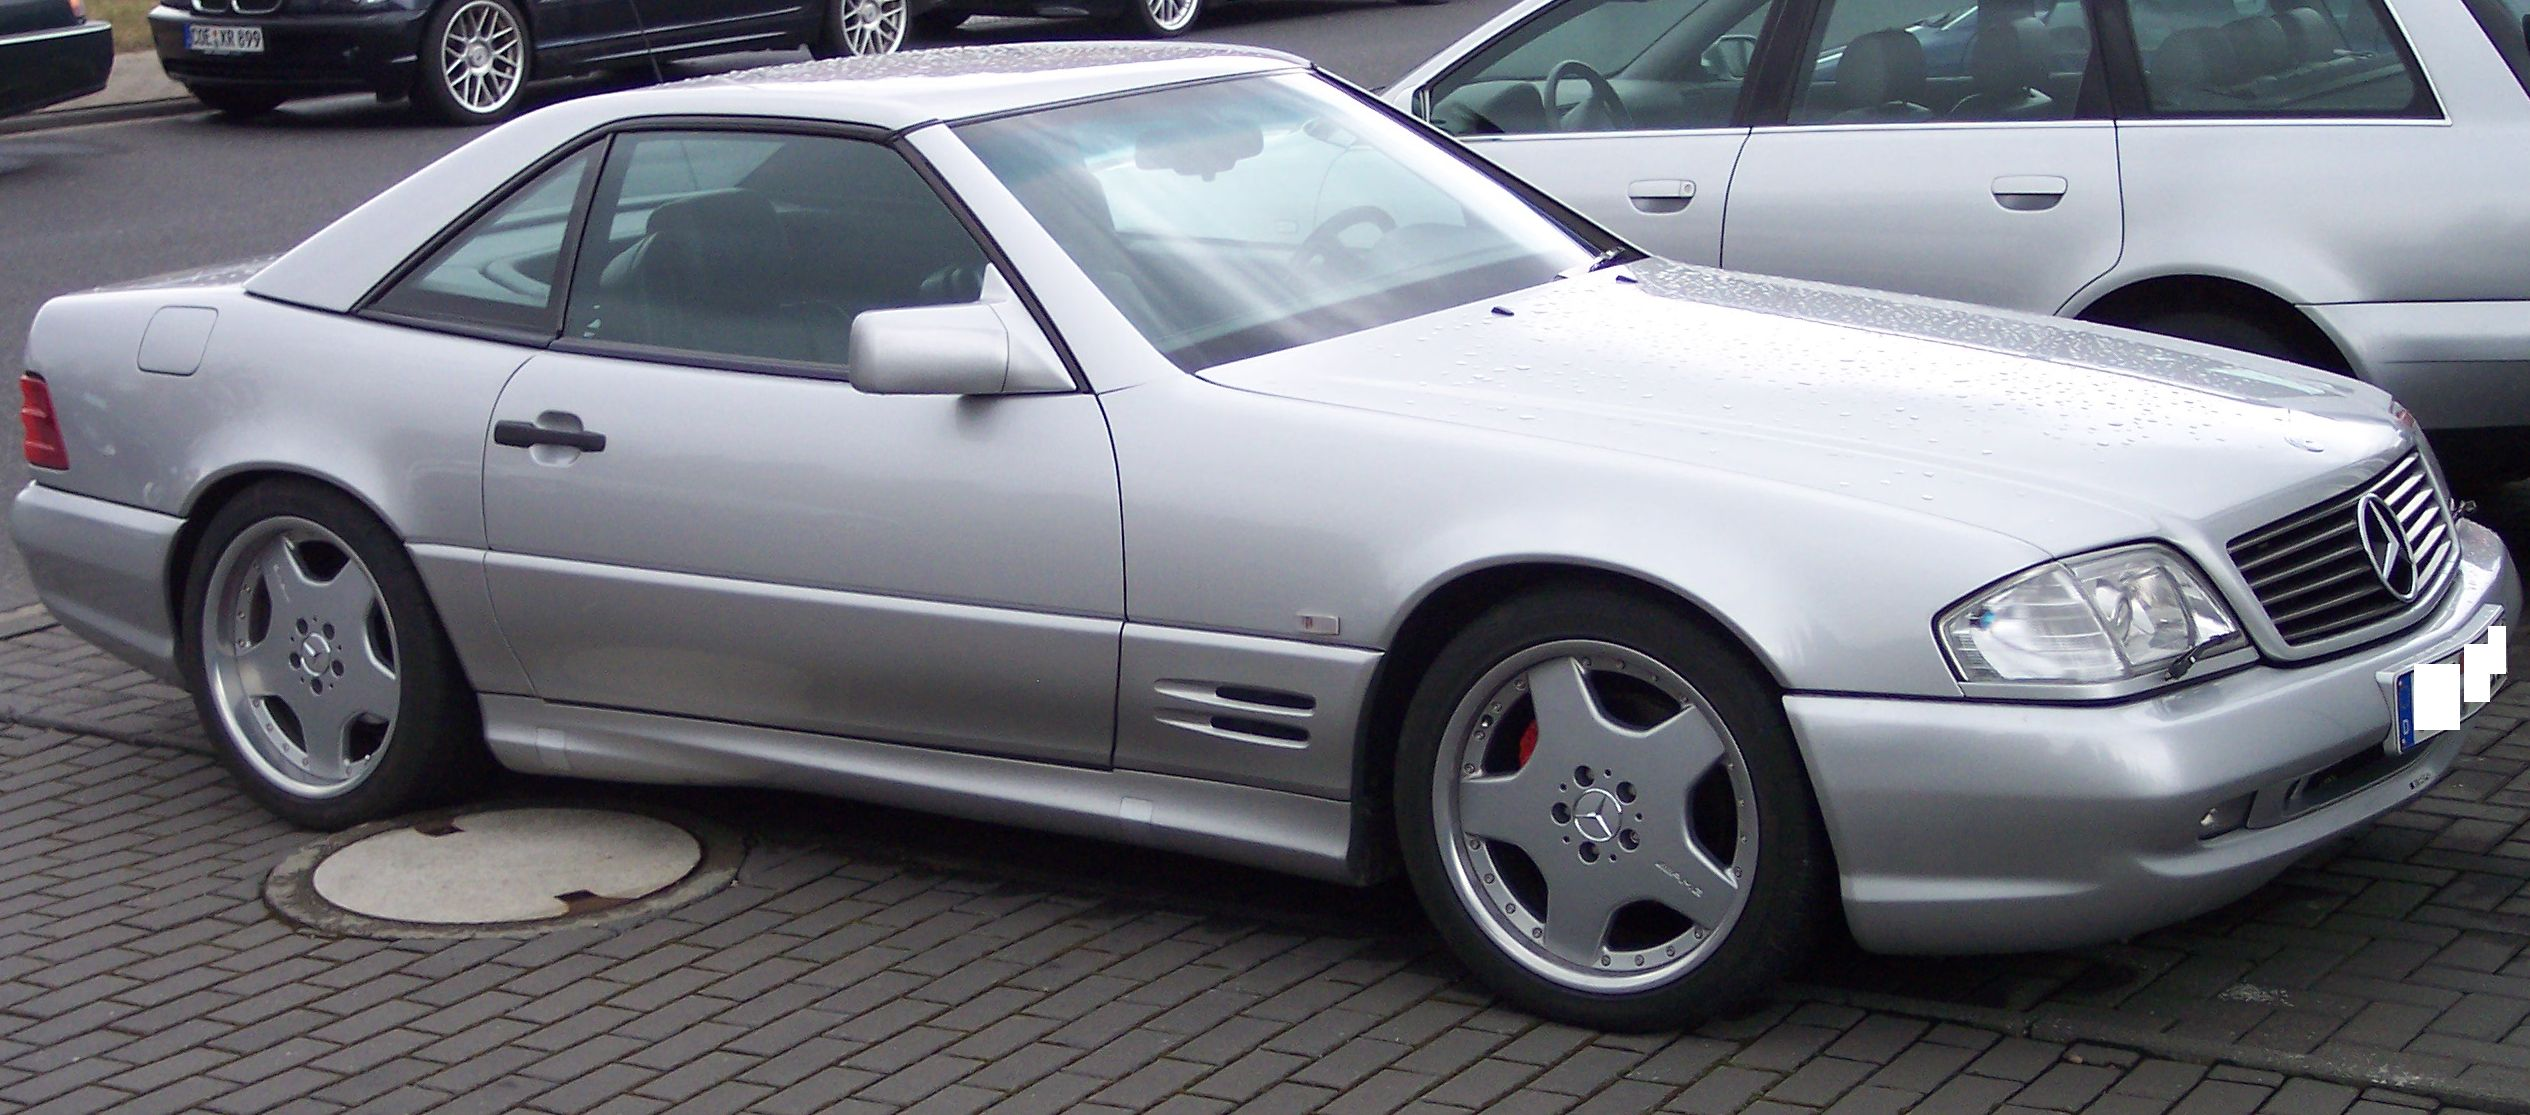 Permalink to Mercedes Benz Sl Class